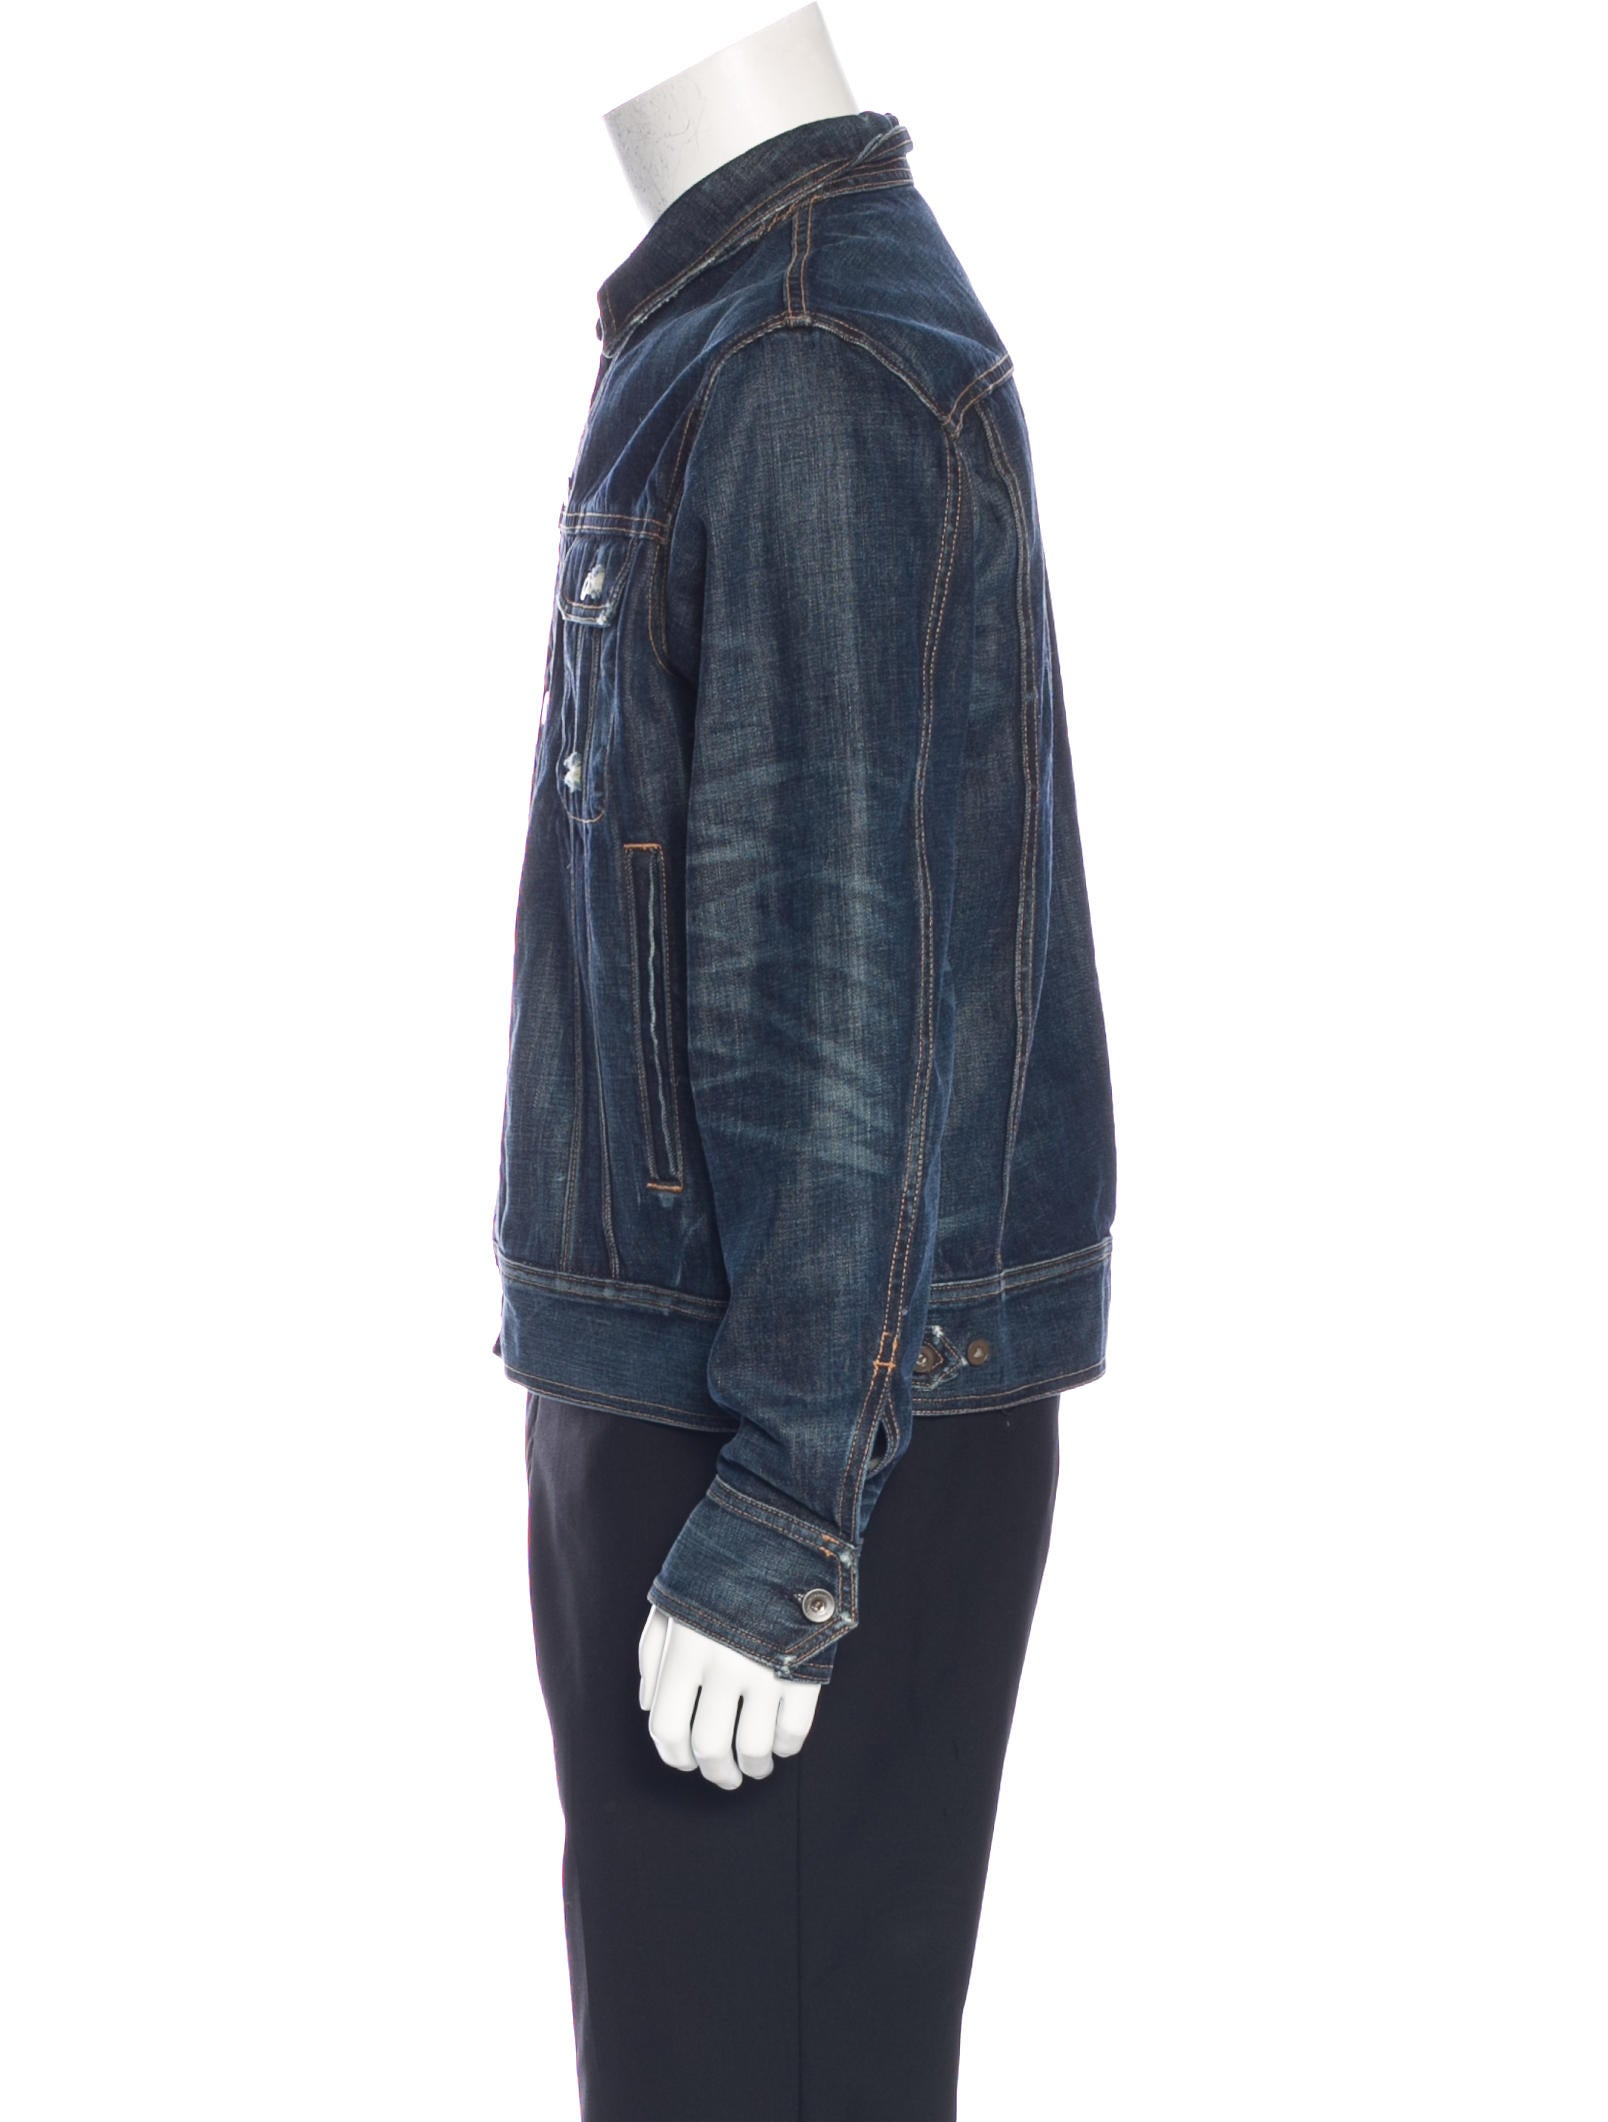 Rag Amp Bone Denim Trucker Jacket Clothing Wragb71843